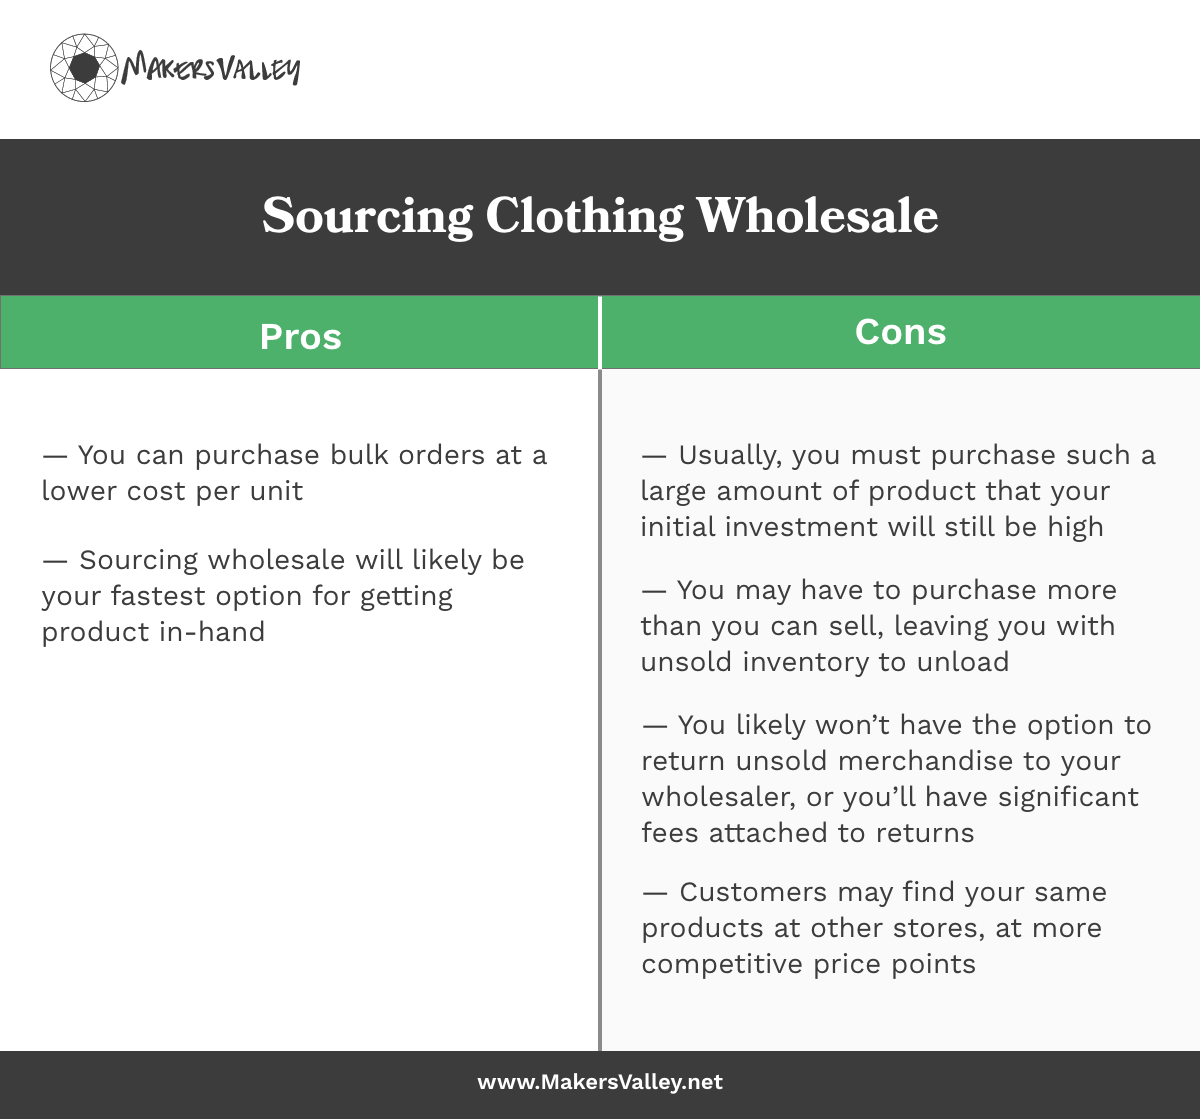 Pros and Cons - Sourcing Clothing Wholesale